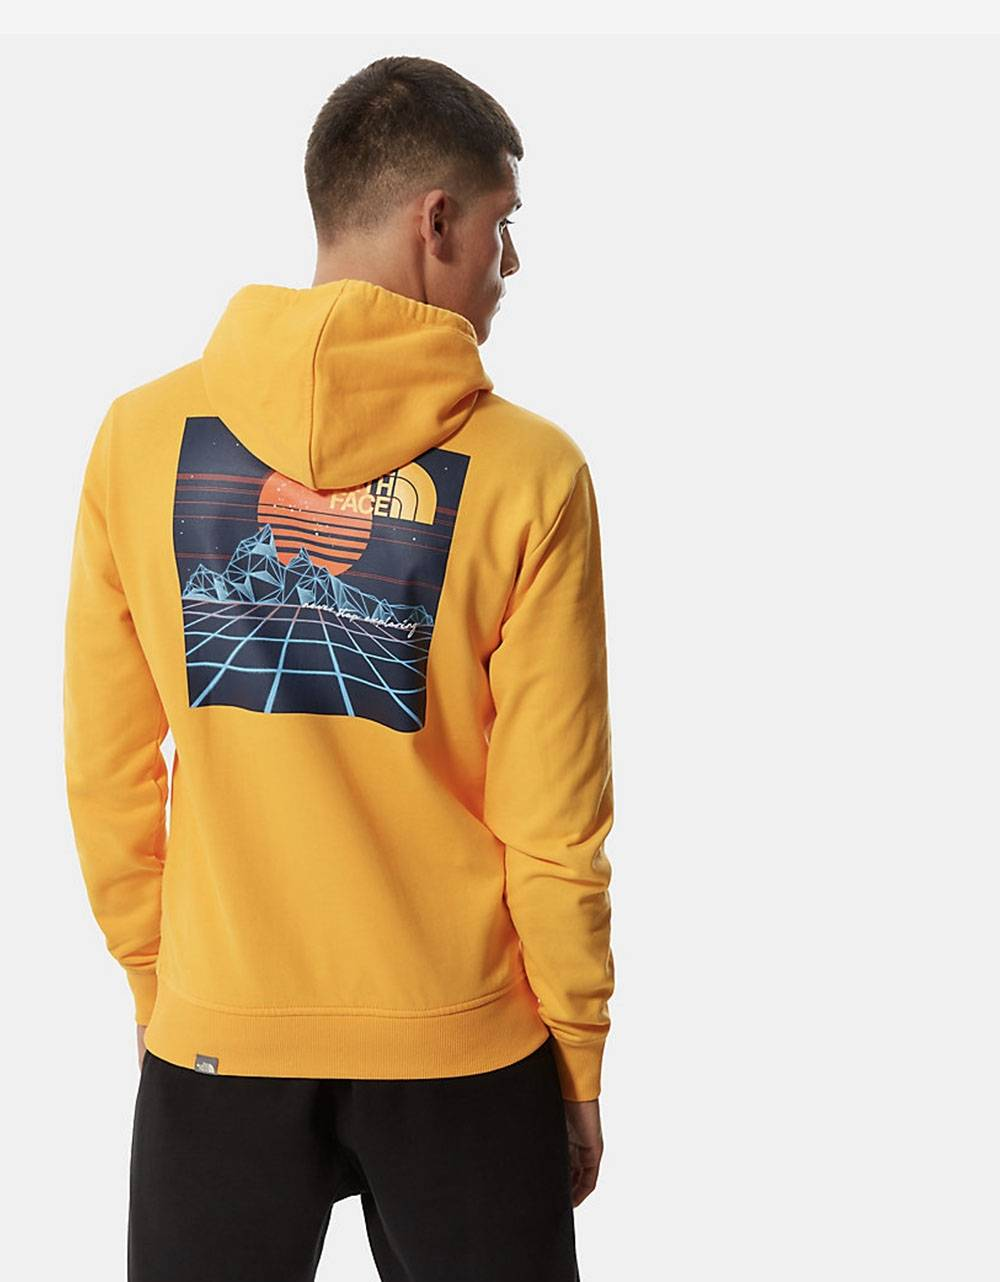 The North Face Throwback hoodie - Summit gold THE NORTH FACE Sweater 95,00 €